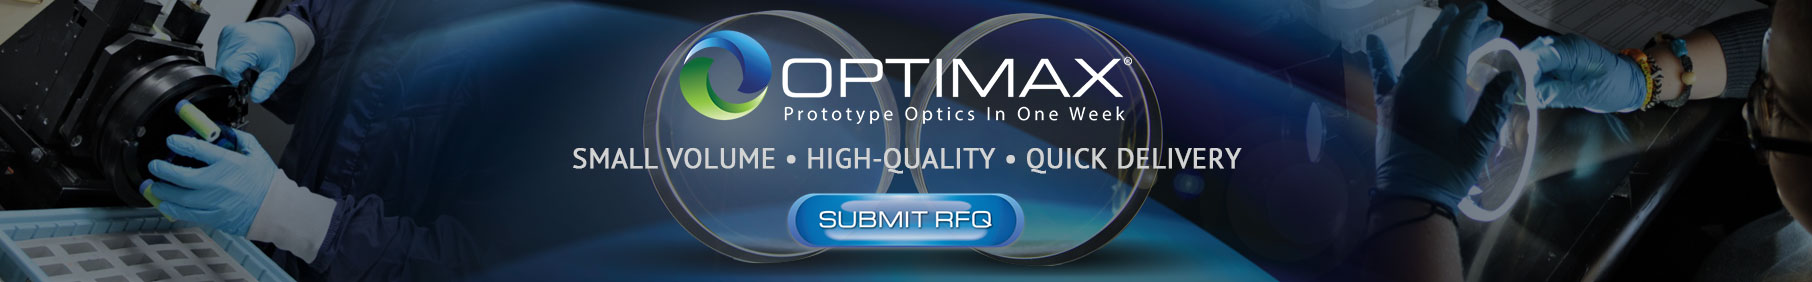 Banner-full-Submit-RFQ-Prototype-Optics